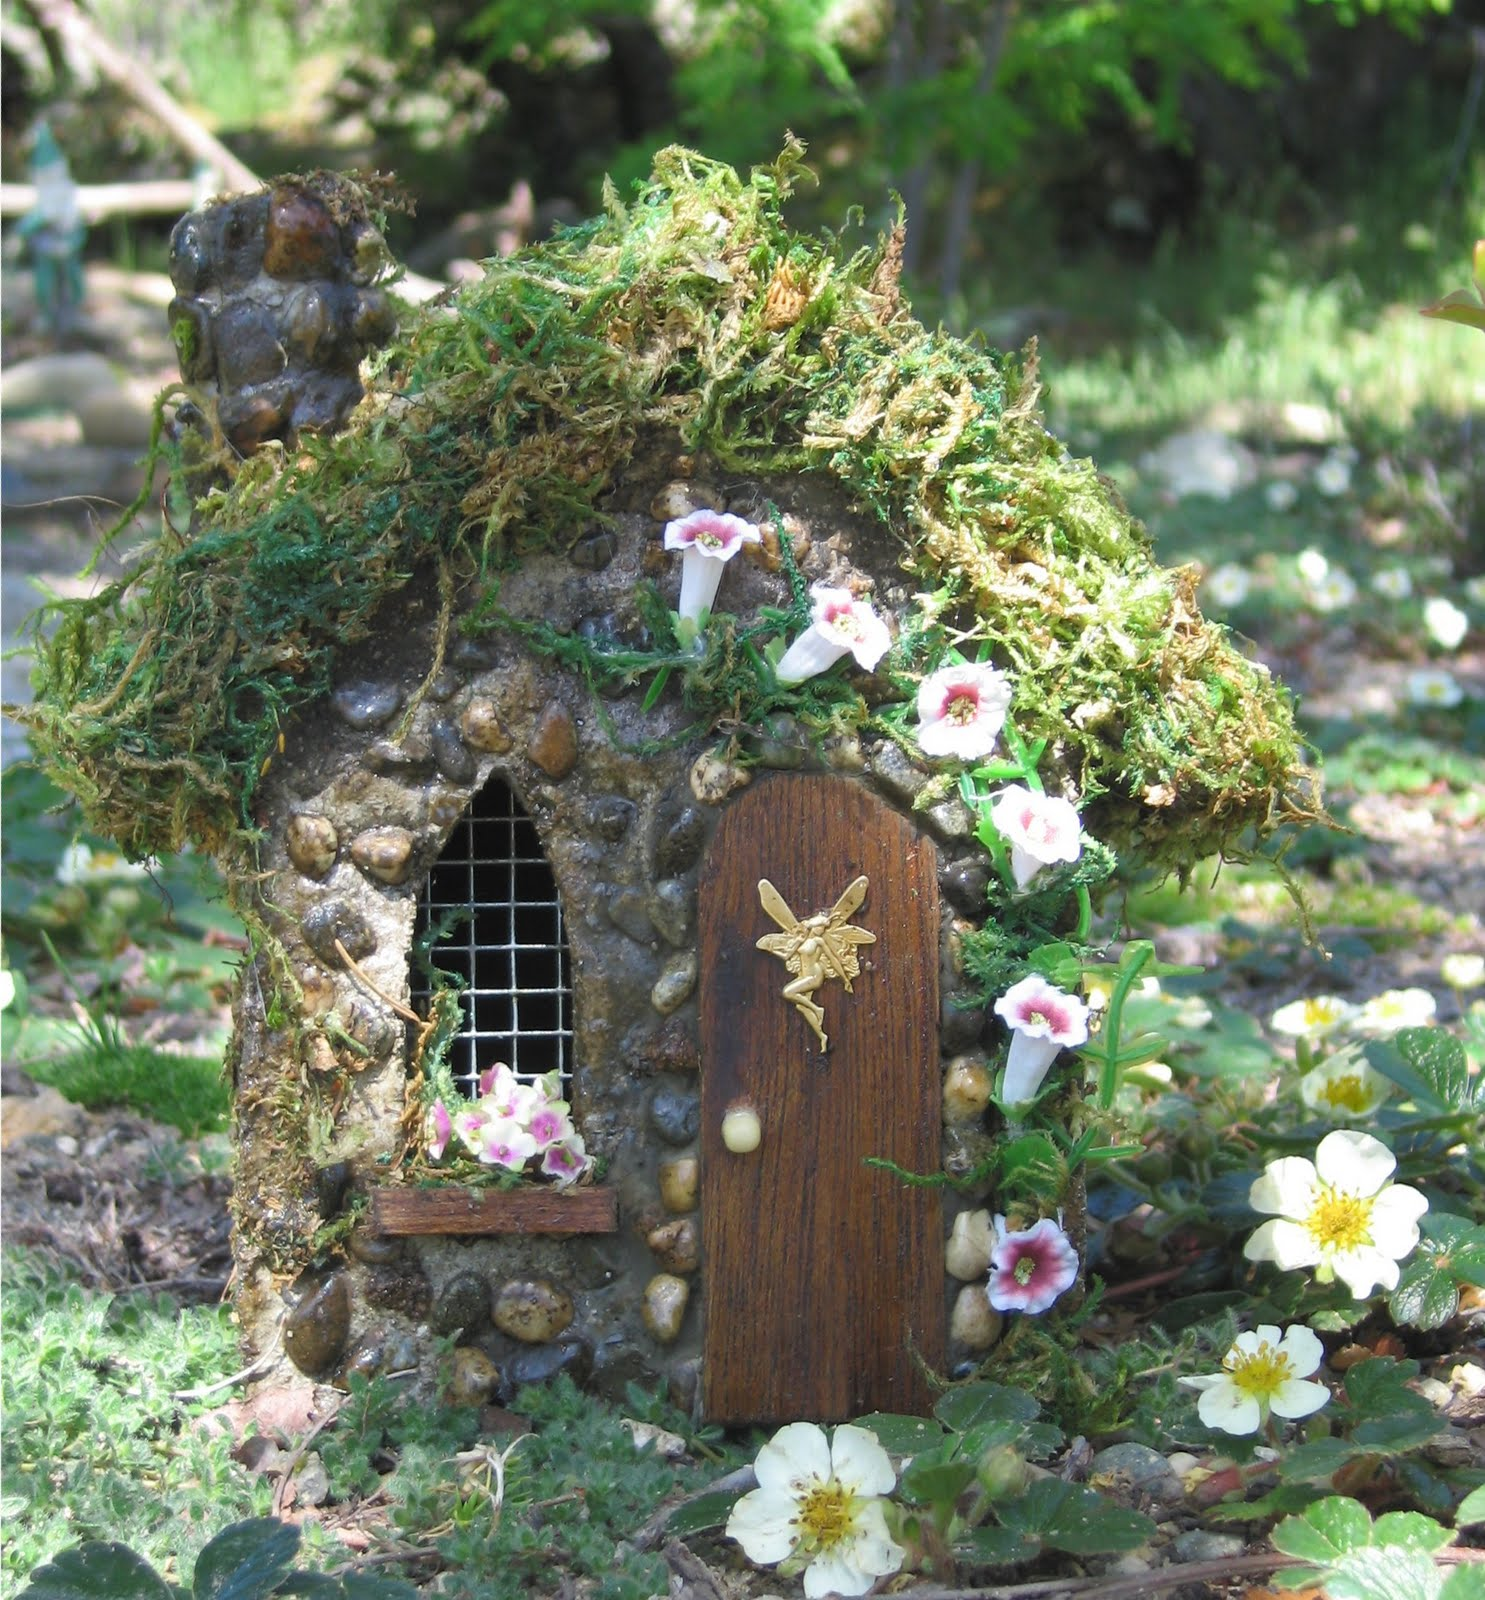 club fe rico fairy club casas de hadas fairy houses. Black Bedroom Furniture Sets. Home Design Ideas